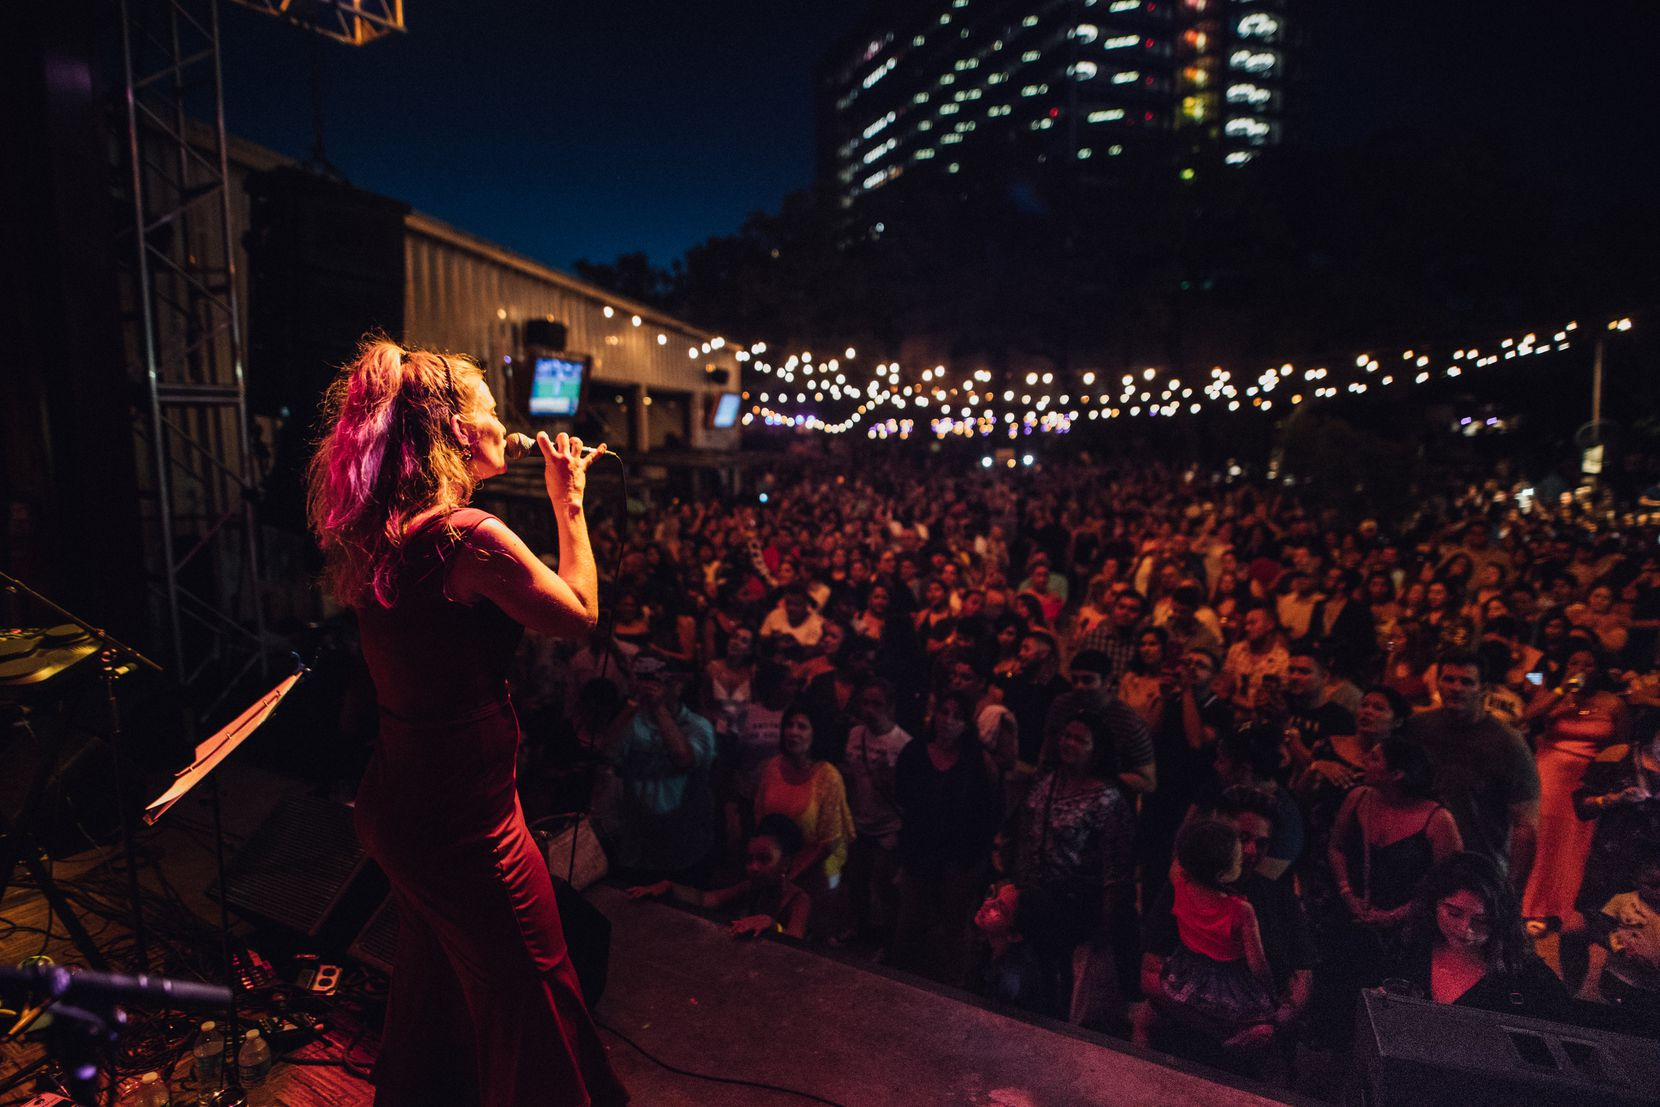 Performances from tribute and cover bands -- like this concert featuring Suzanna Choffel singing Selena songs at The Rustic -- draw big crowds in Dallas.